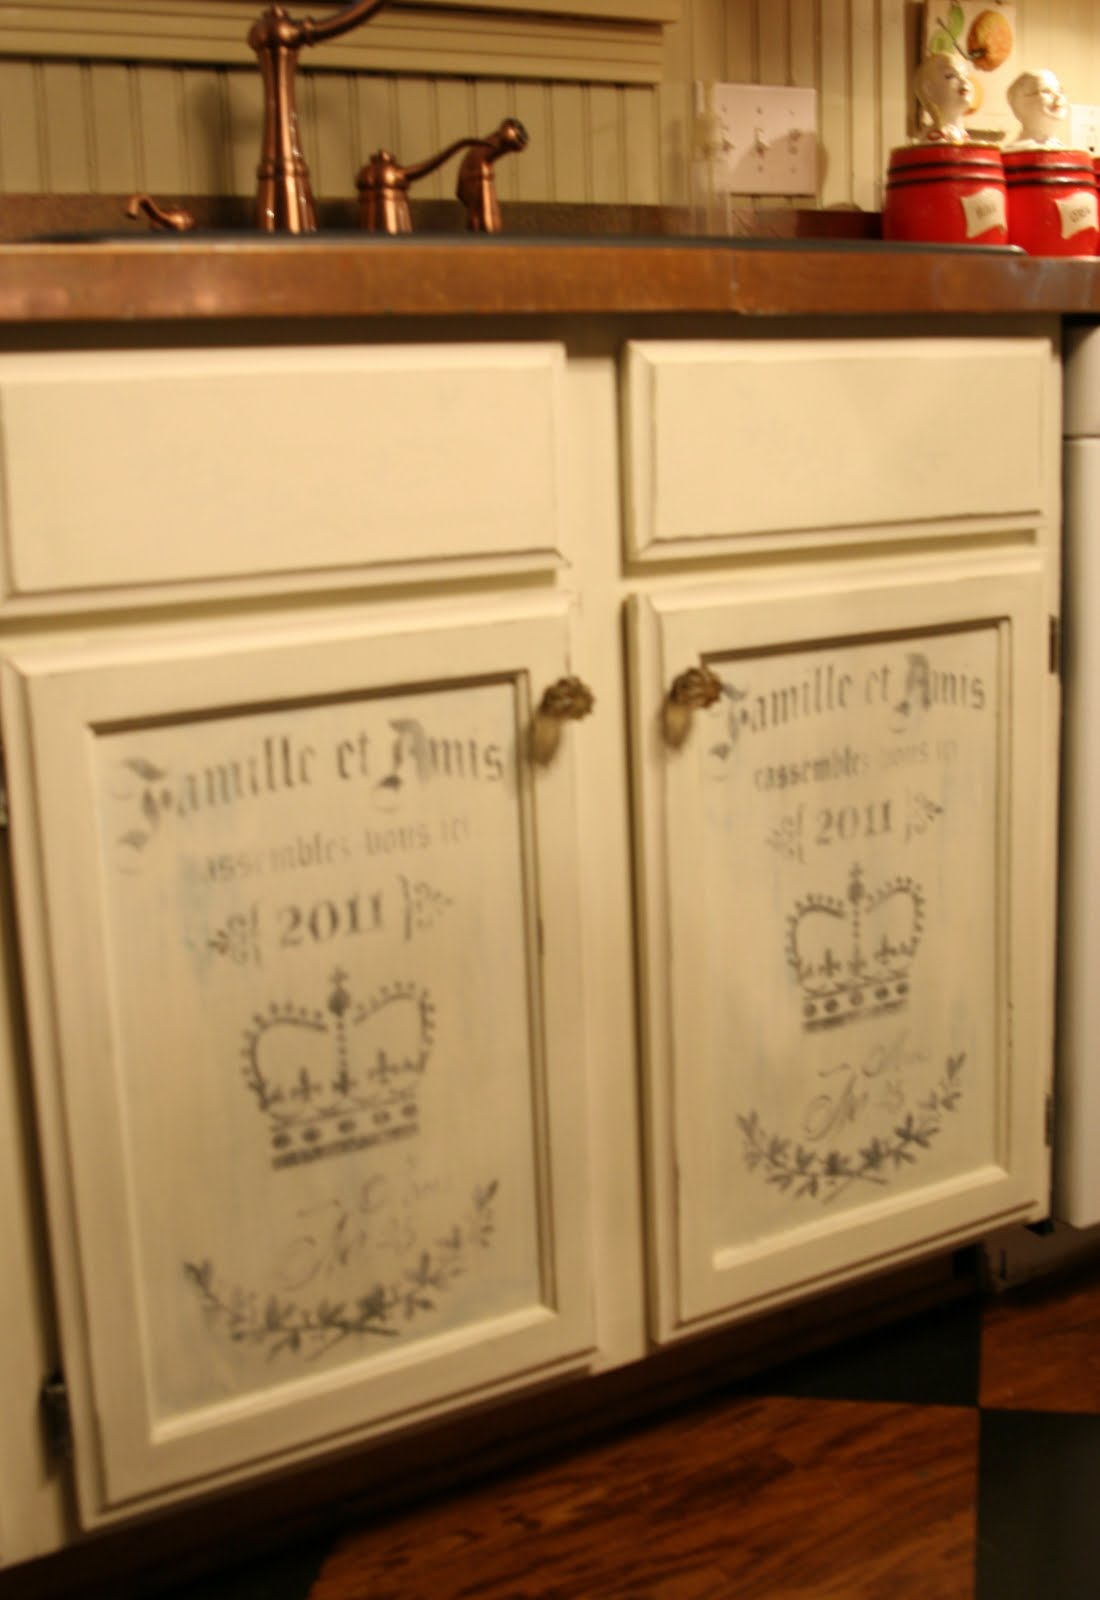 We Sell Maison De Stencils At Smitten On The Square In Downtown